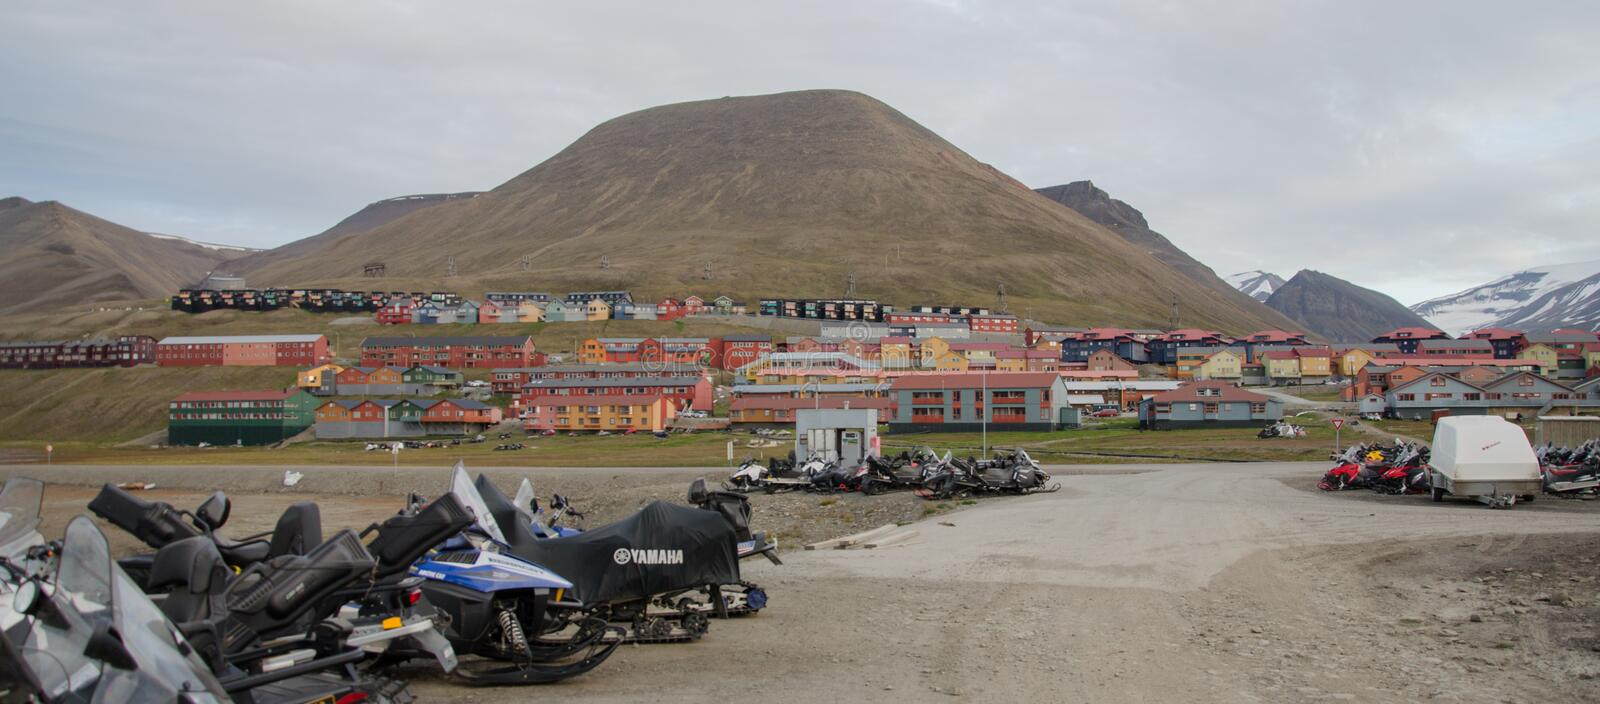 Longyearbyen Spitsbergen, Svalbard, Norway royalty free stock photos